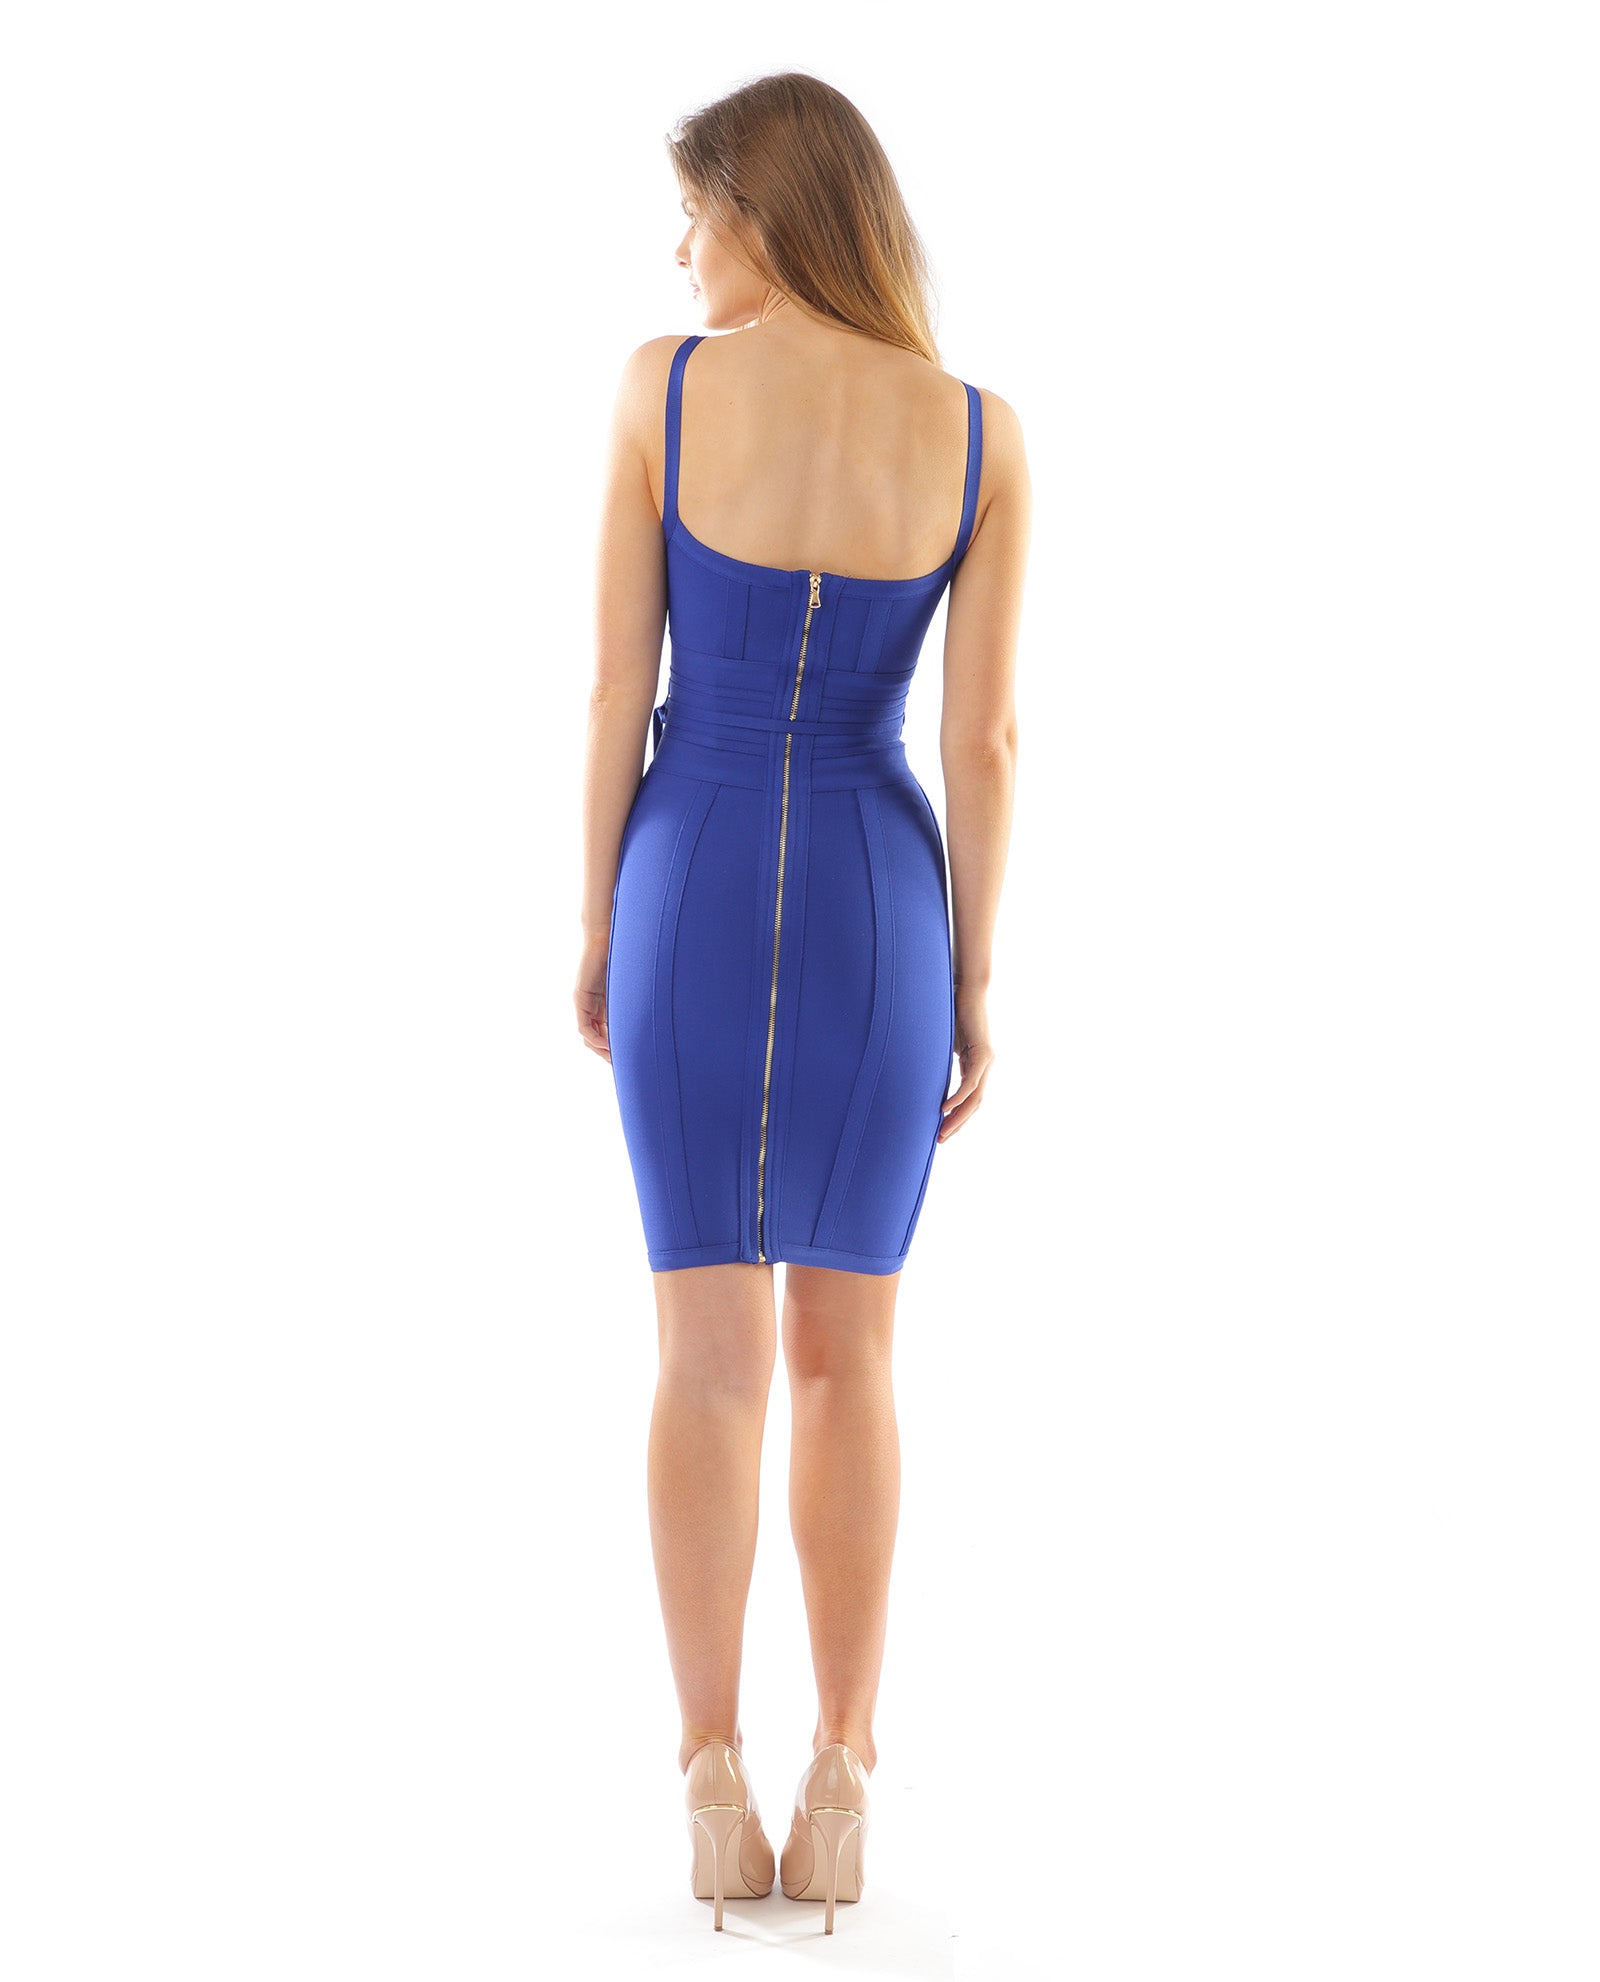 Rent dress | Blue bodycon tie waist dress | Hirestreetuk.com